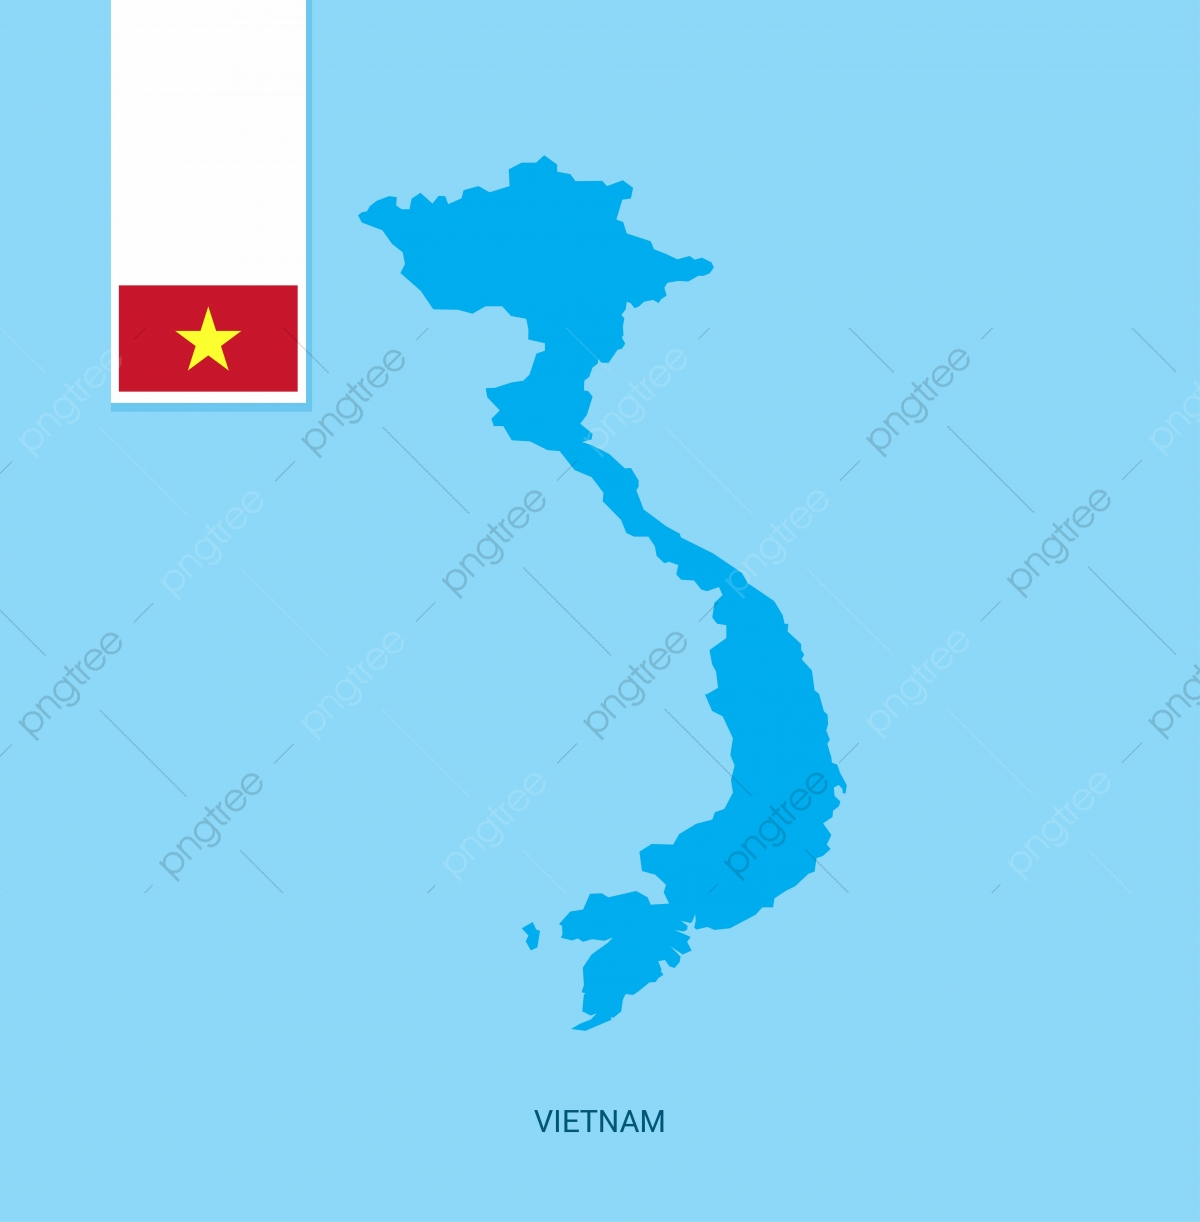 Vietnam Country Map With Flag Over Blue Background Map Icons Flag Icons Background Icons Png And Vector With Transparent Background For Free Download